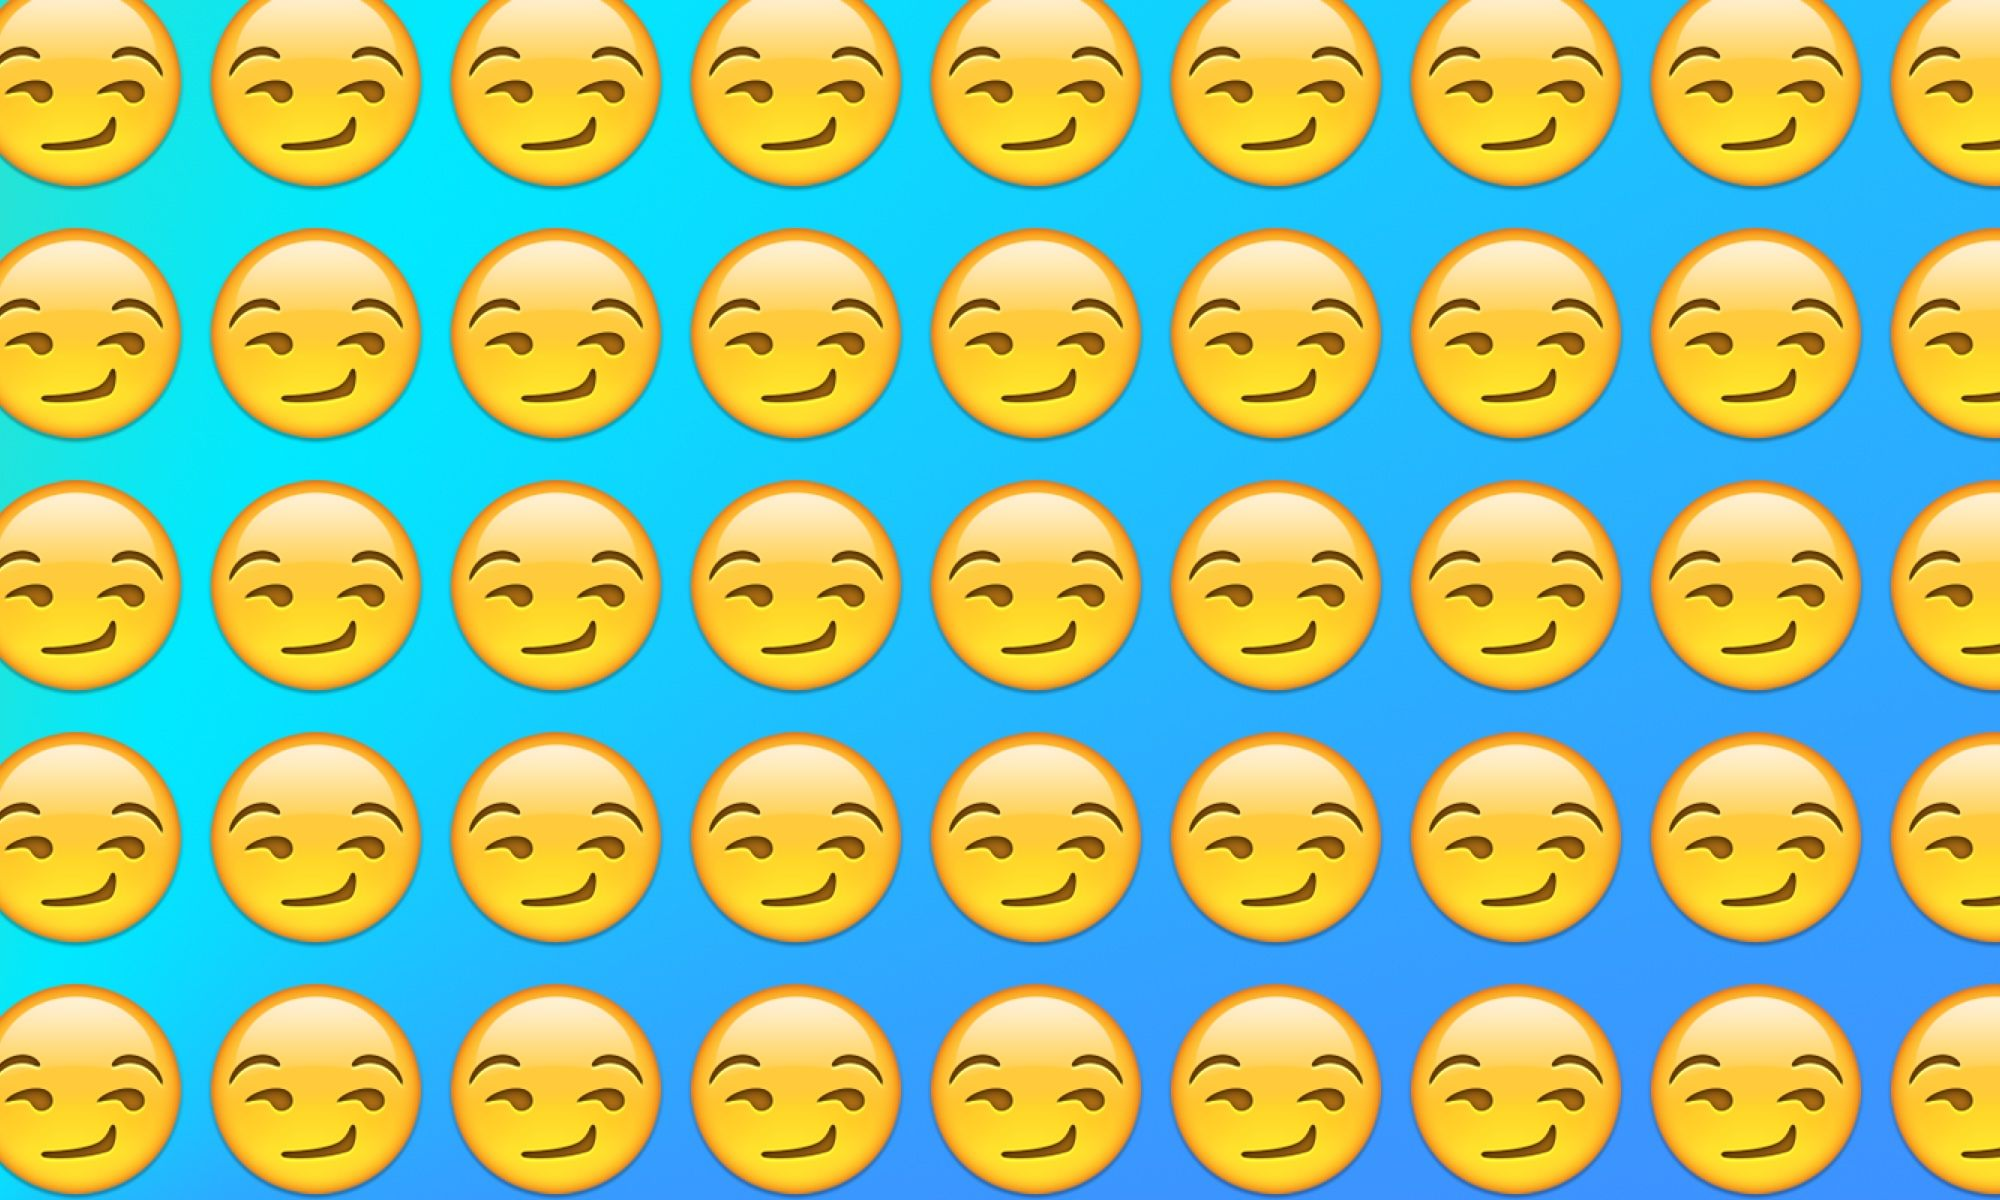 Emojiology: 😏 Smirking Face